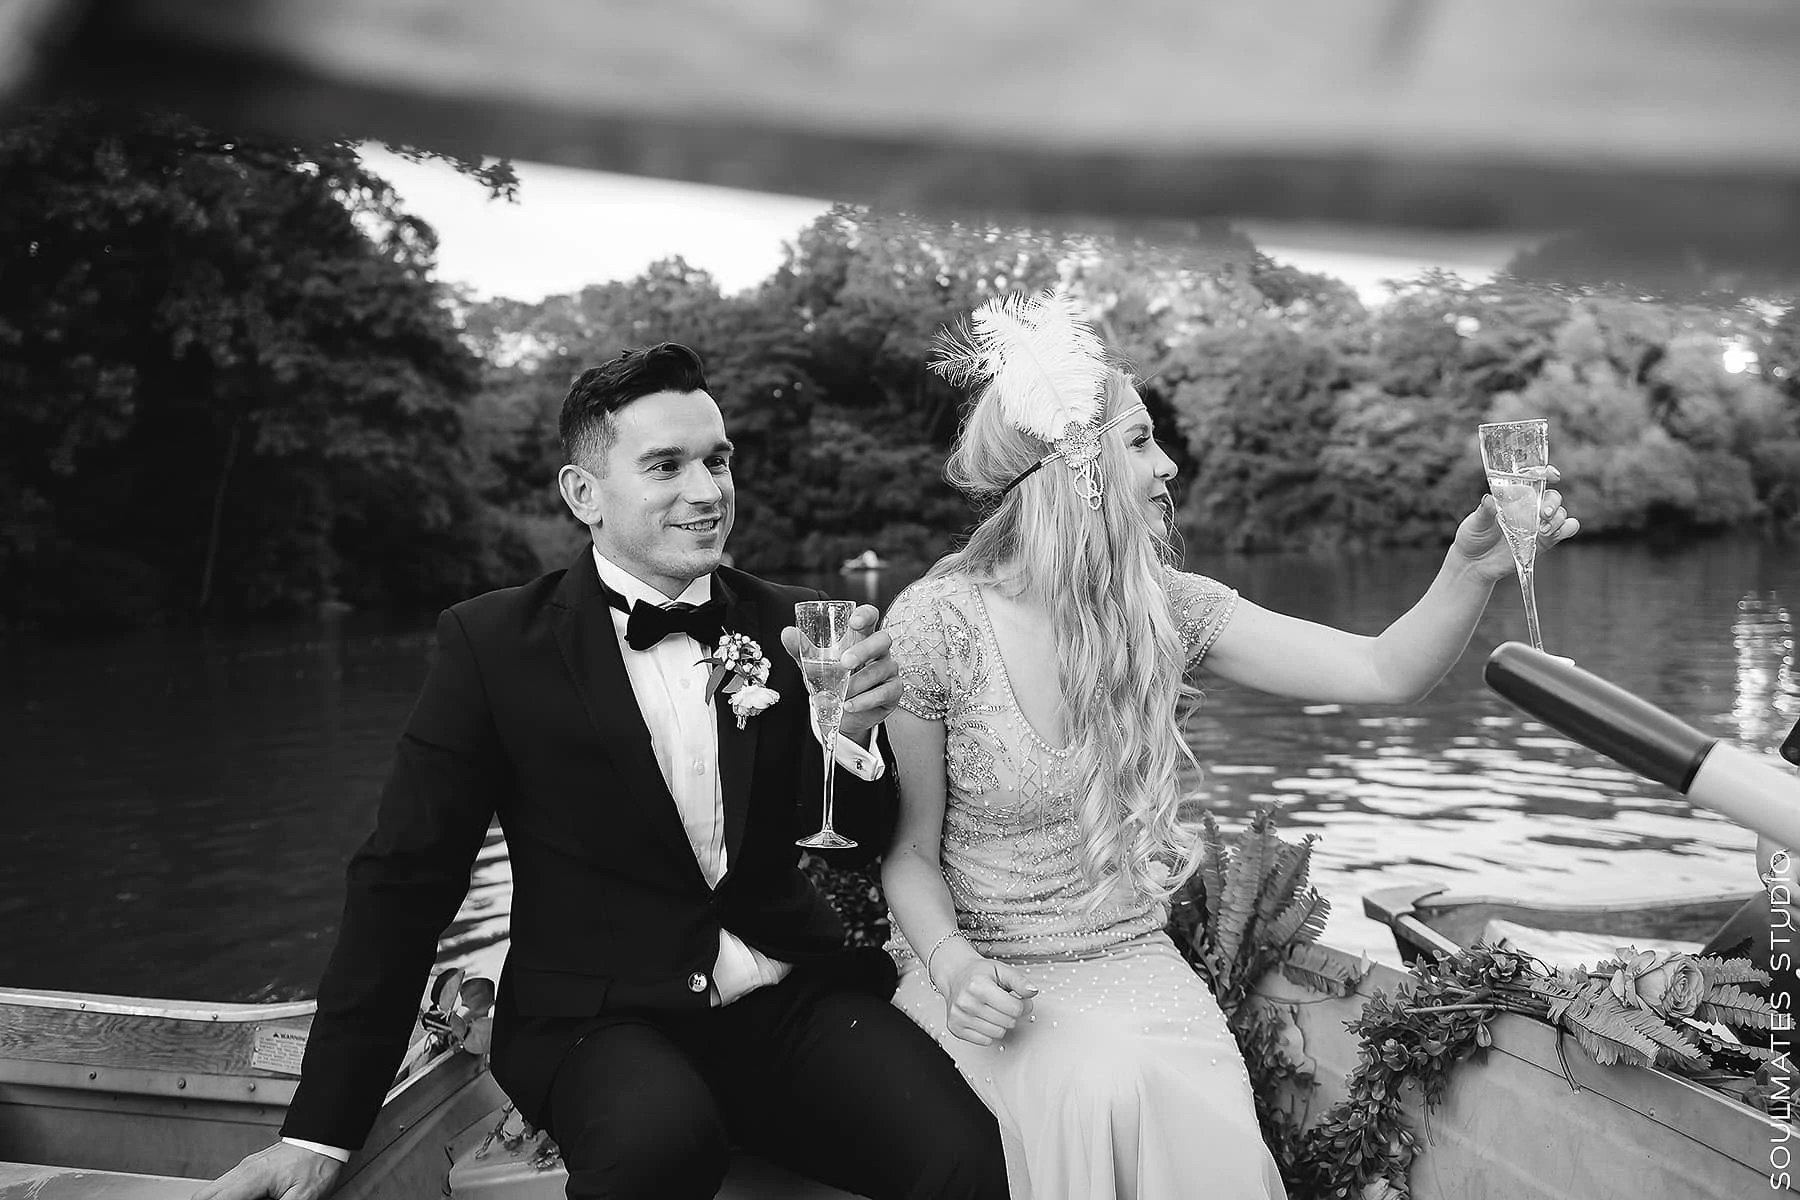 Bride and Groom toasting the glass of sparkling wine on the boat on the Central Park lake